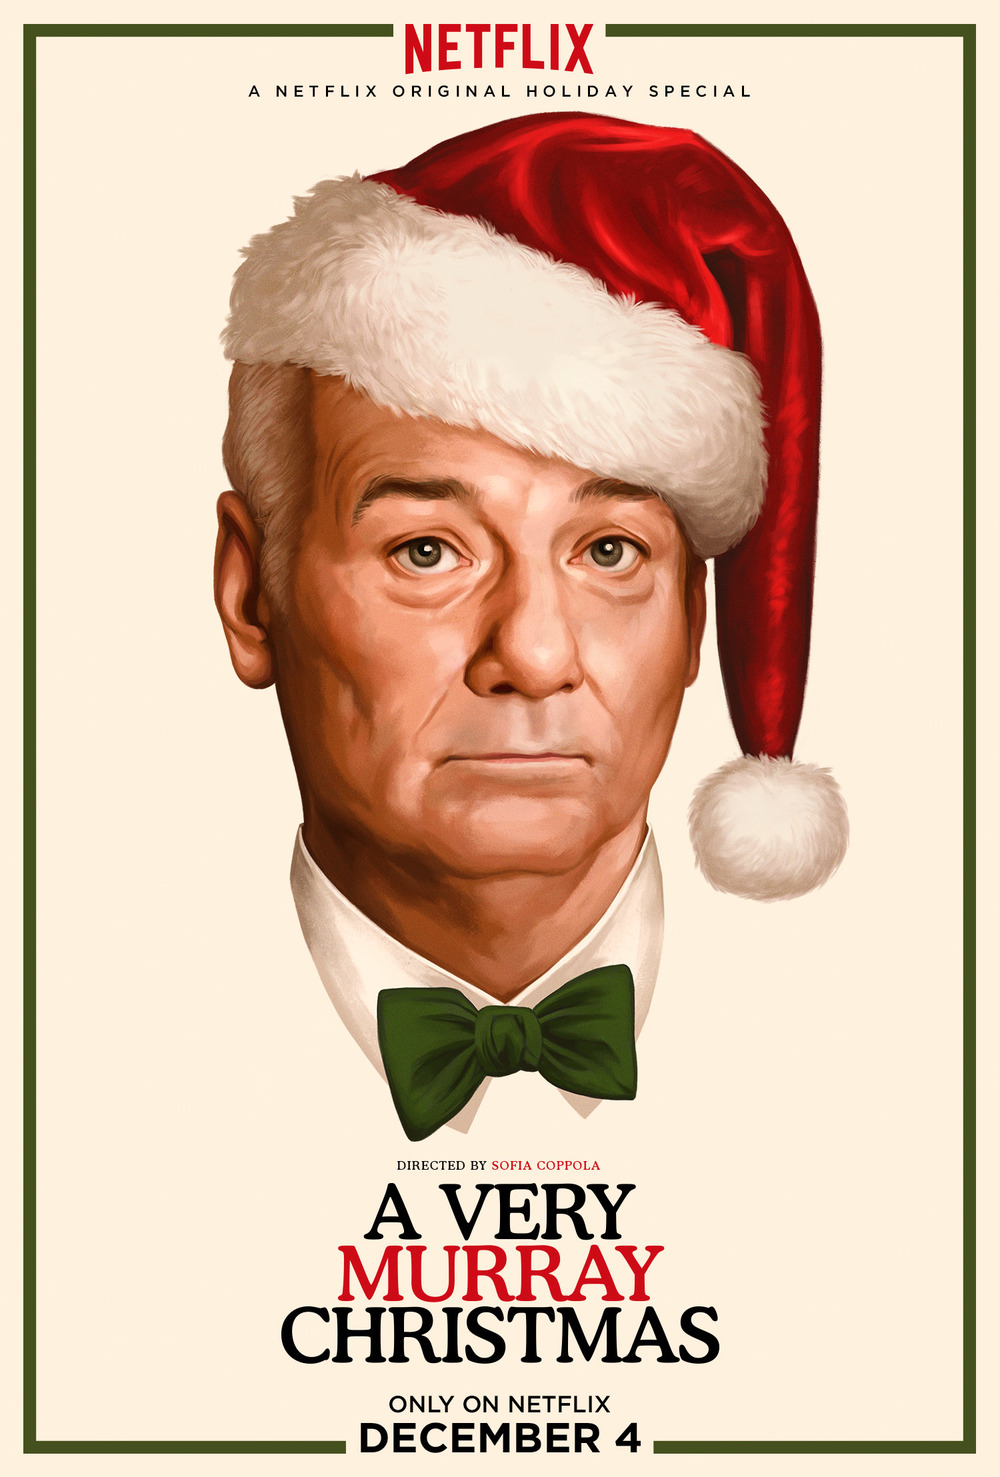 ...a very murray christmas poster art, done by Alex Osborn...